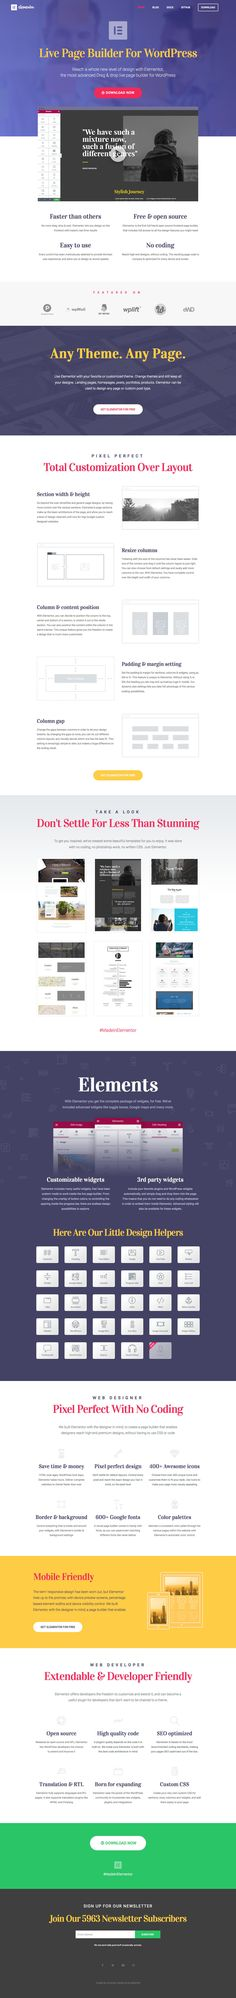 Smart One Pager showcasing the features of the 'Elementor' Page Builder WordPress plugin. Really like how they used the plugin to create this very landing page.